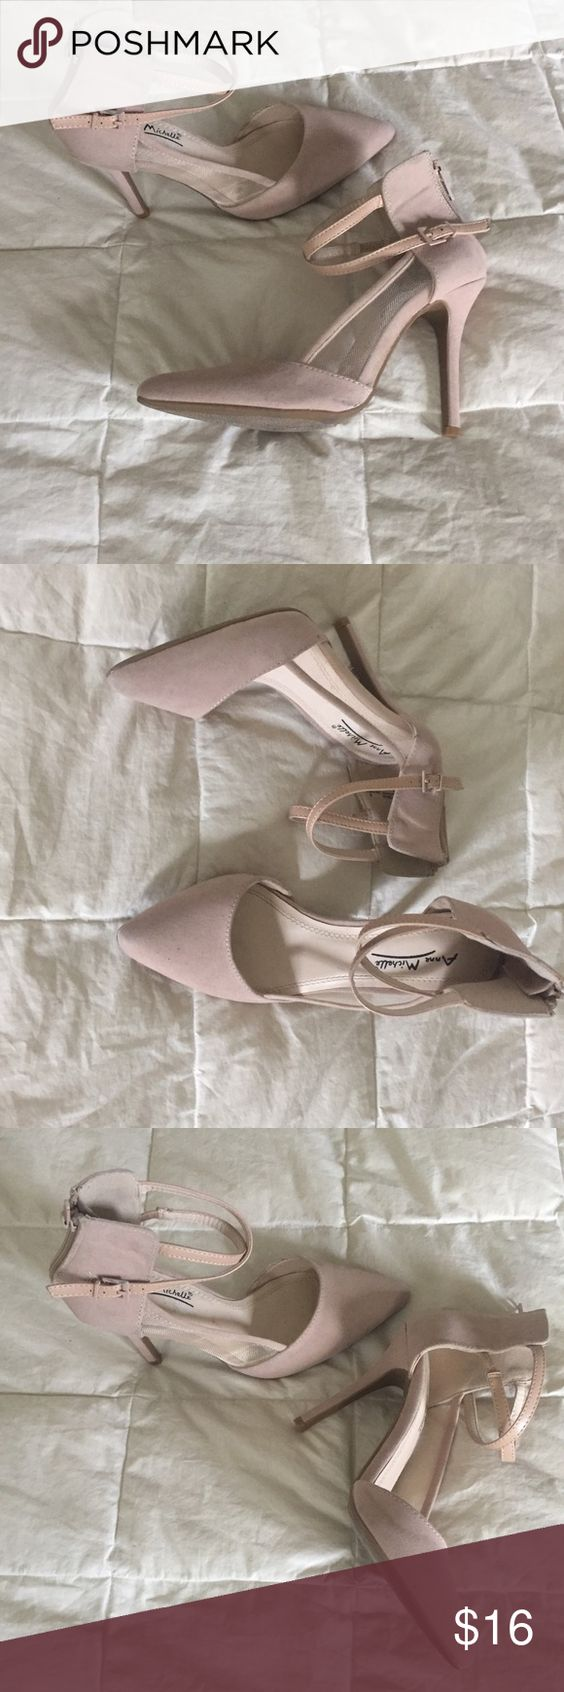 Nude ankle strap pumps, heels size 36, or size 6 Nude pumps, heels, zip up detail to get in shoes, size 36 or 6, ankle strap is adjustable, 4 inch heel Anne Michelle Shoes Heels